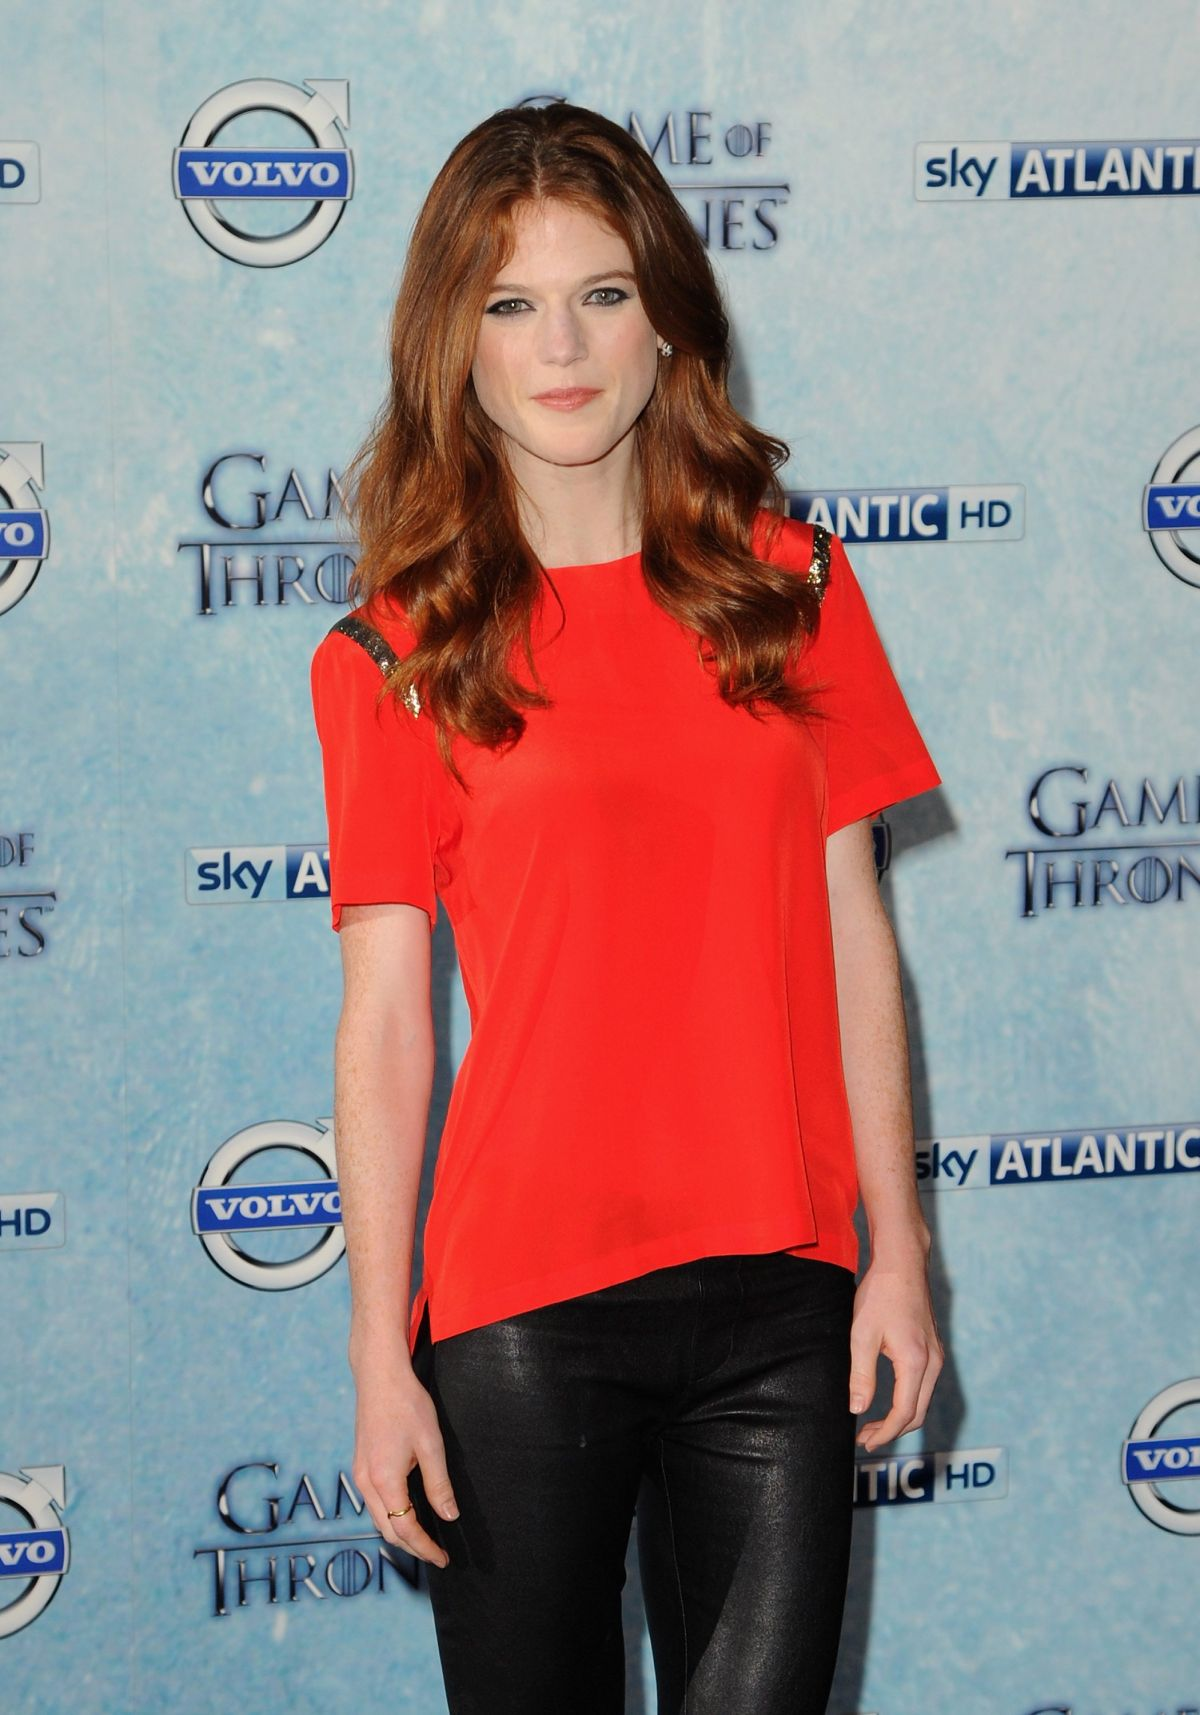 ROSE LESLIE At Game Of Thrones Fourth Season Premiere In